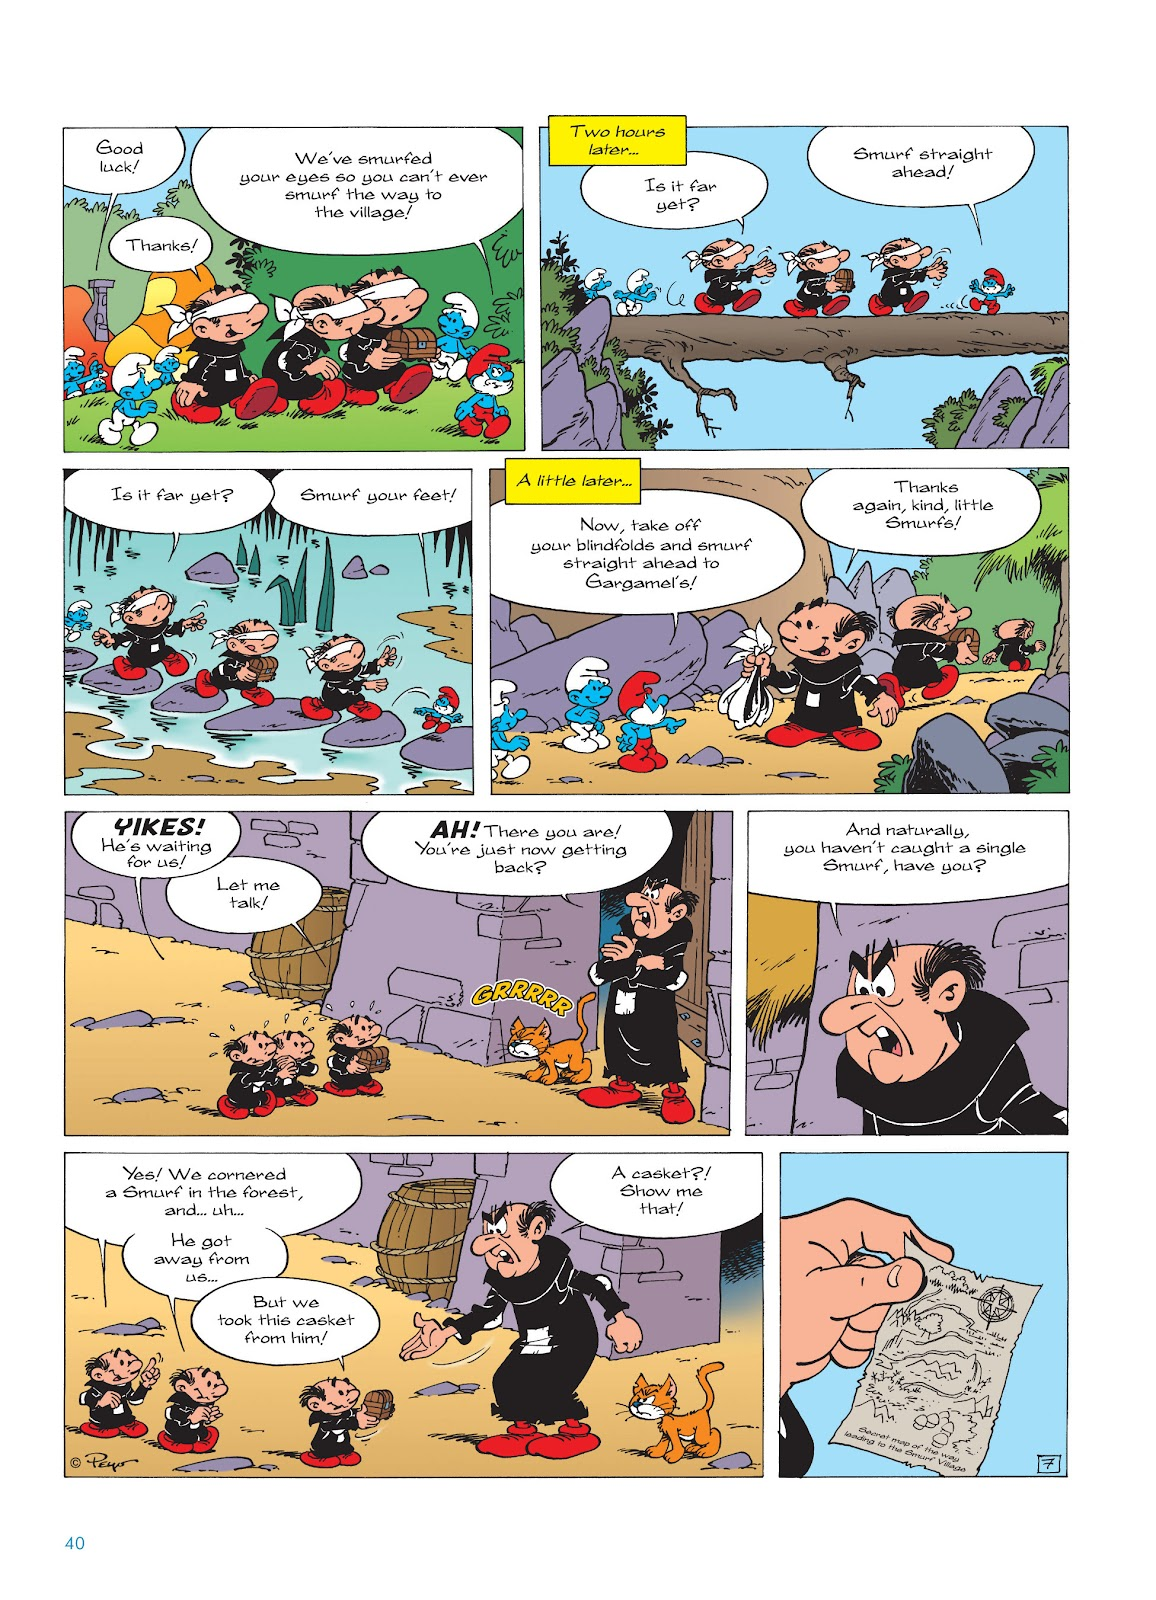 Read online The Smurfs comic -  Issue #17 - 40